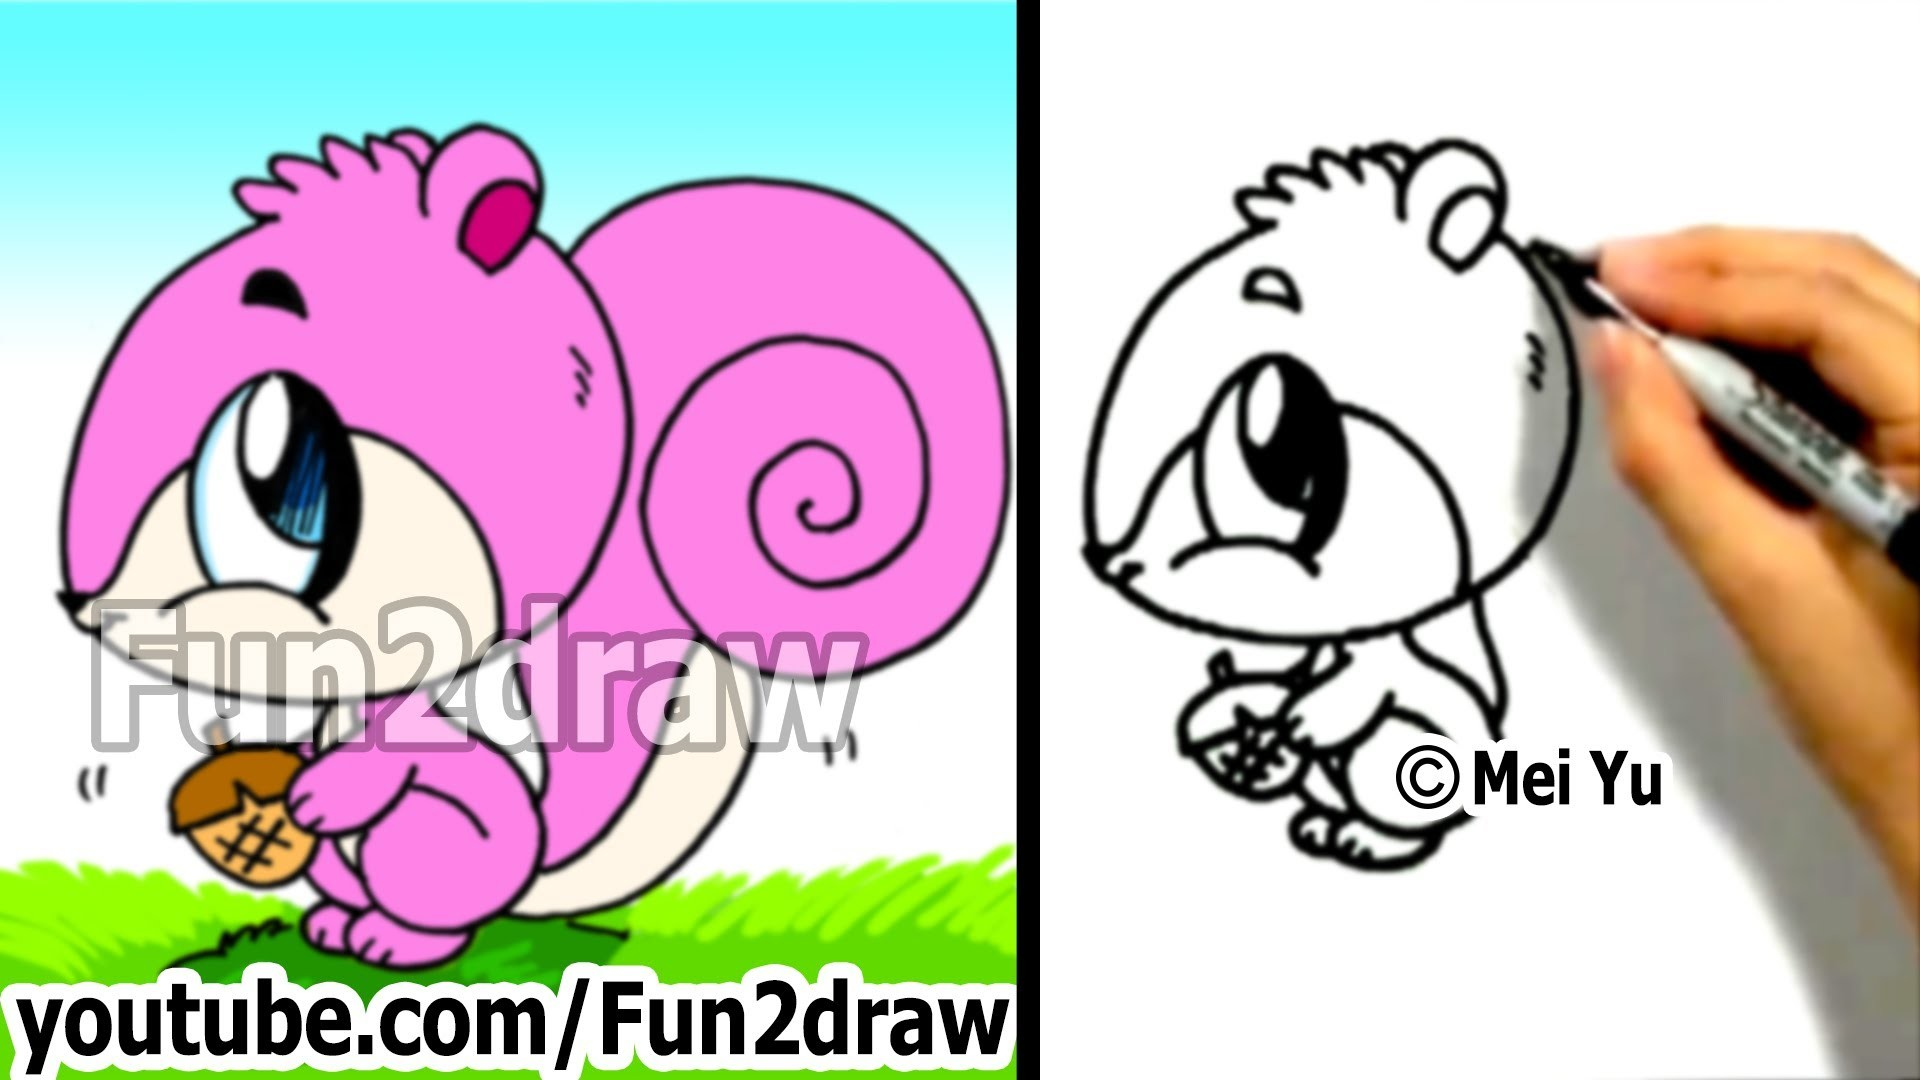 How to Draw a Cartoon Squirrel in 2 min - Drawing Step by Step Cute Art - Fun2draw